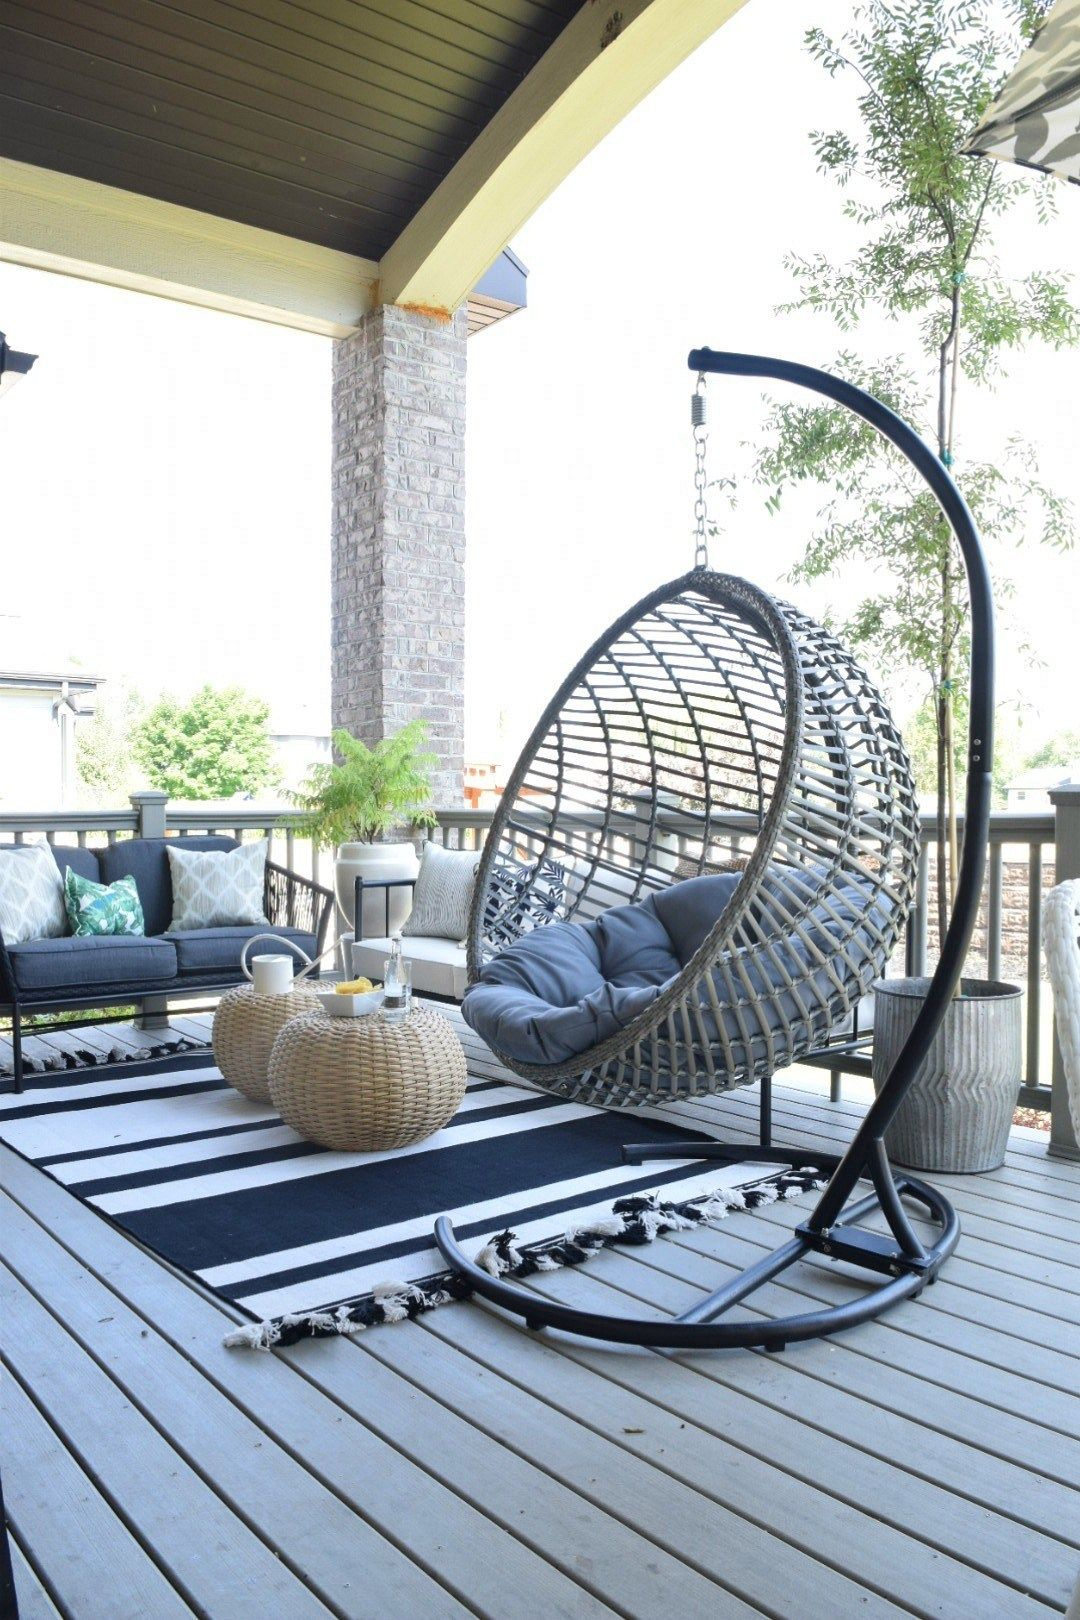 Outdoor Patio and Living Space with Hanging Chair Patio